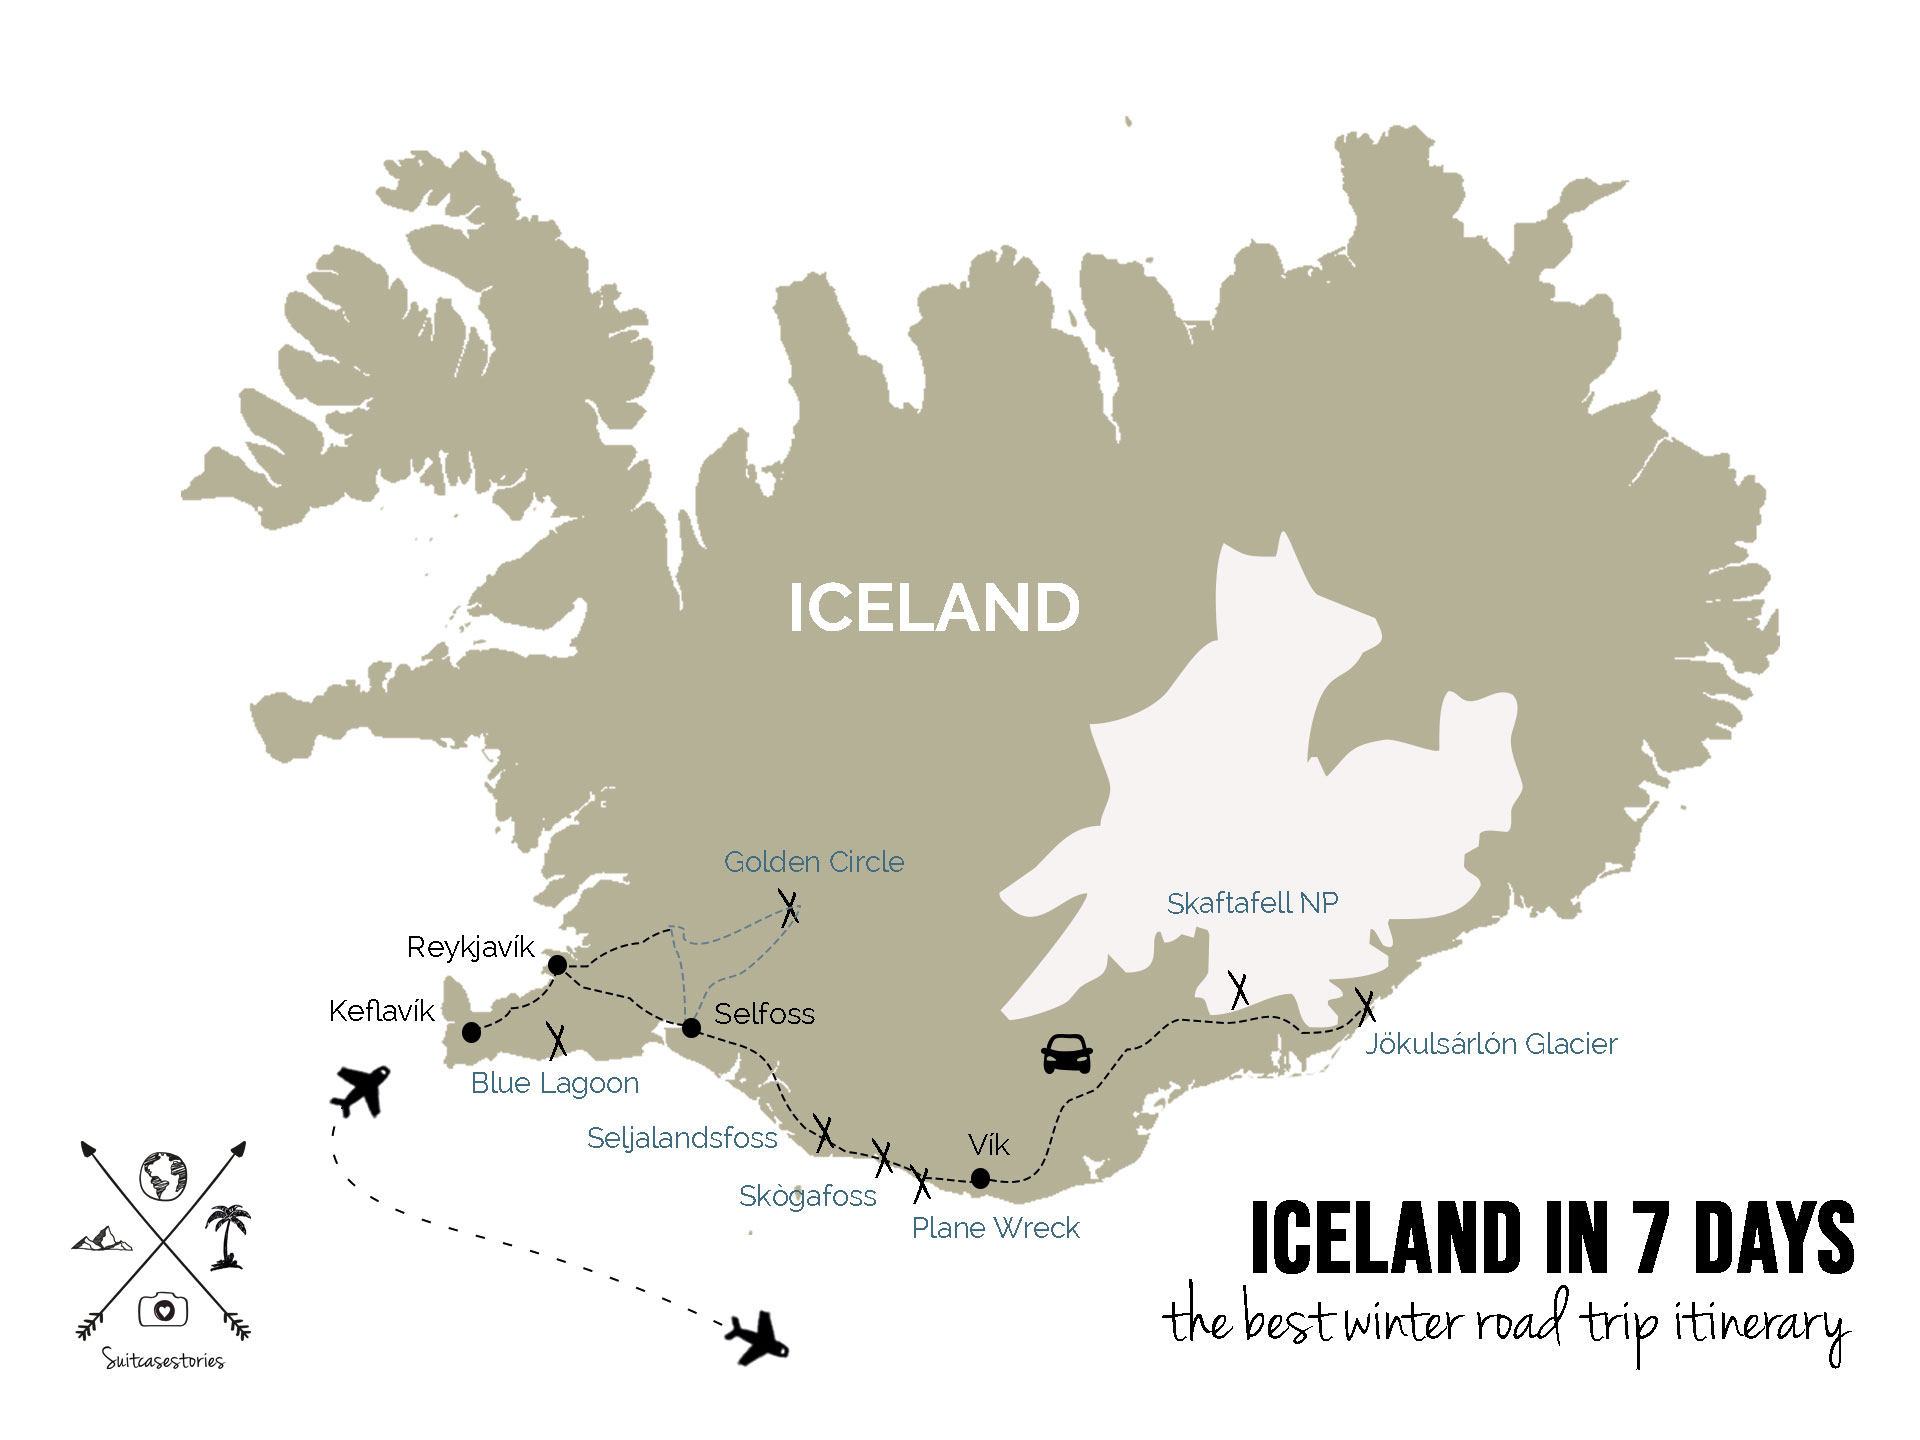 Iceland in 7 days - the best winter road trip itinerary